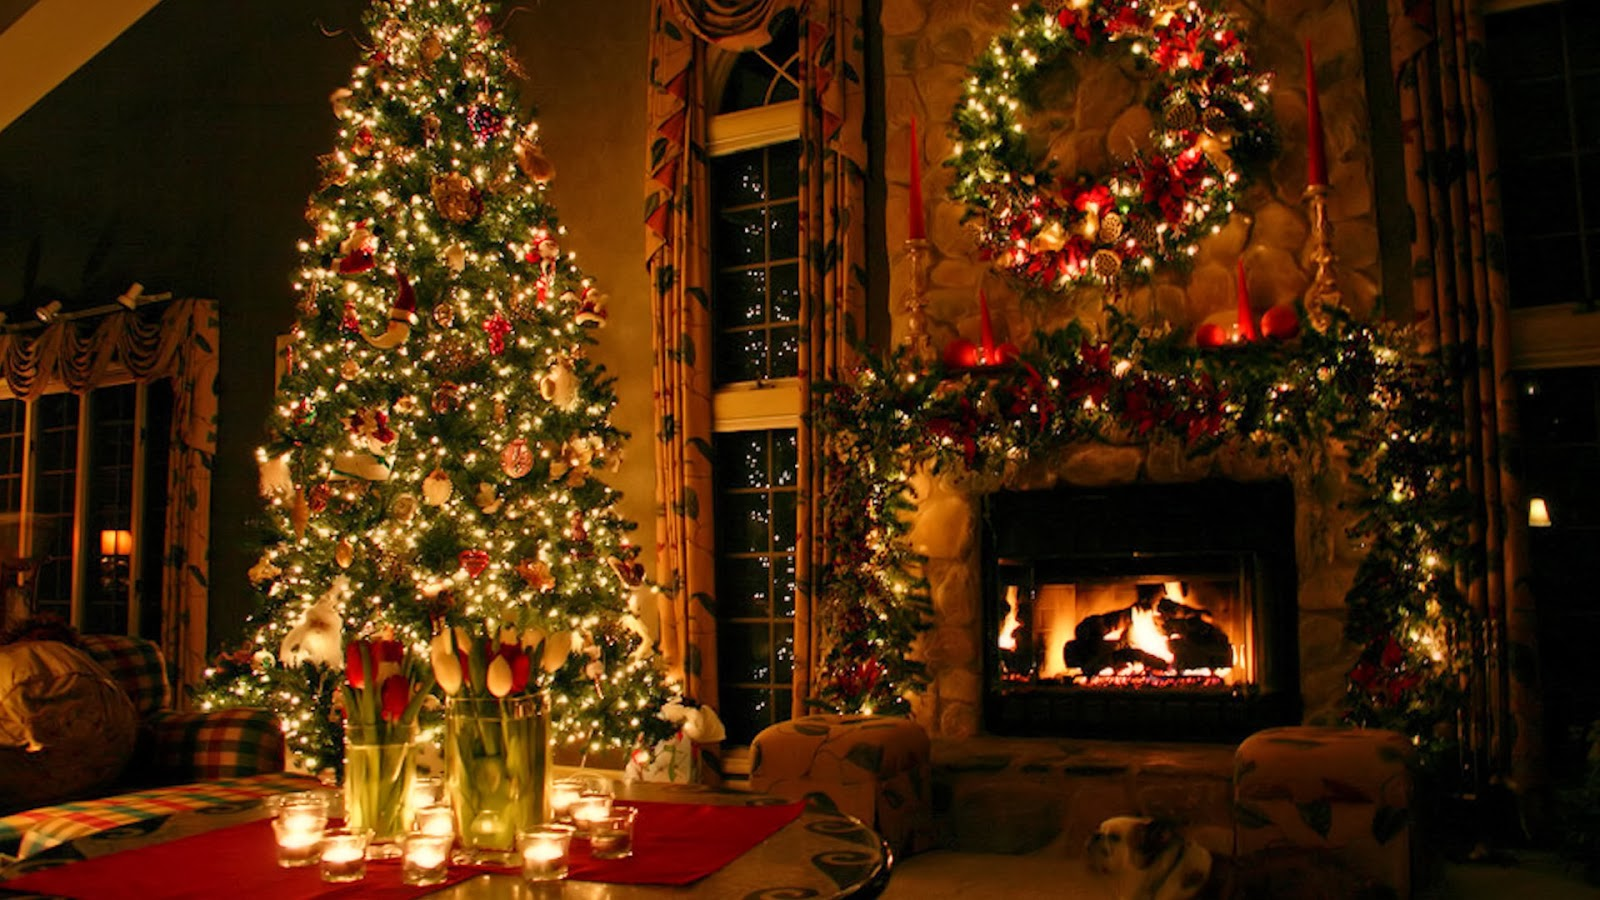 Christmas decorations ideas world top blogger for Ideas for decorating my home for christmas